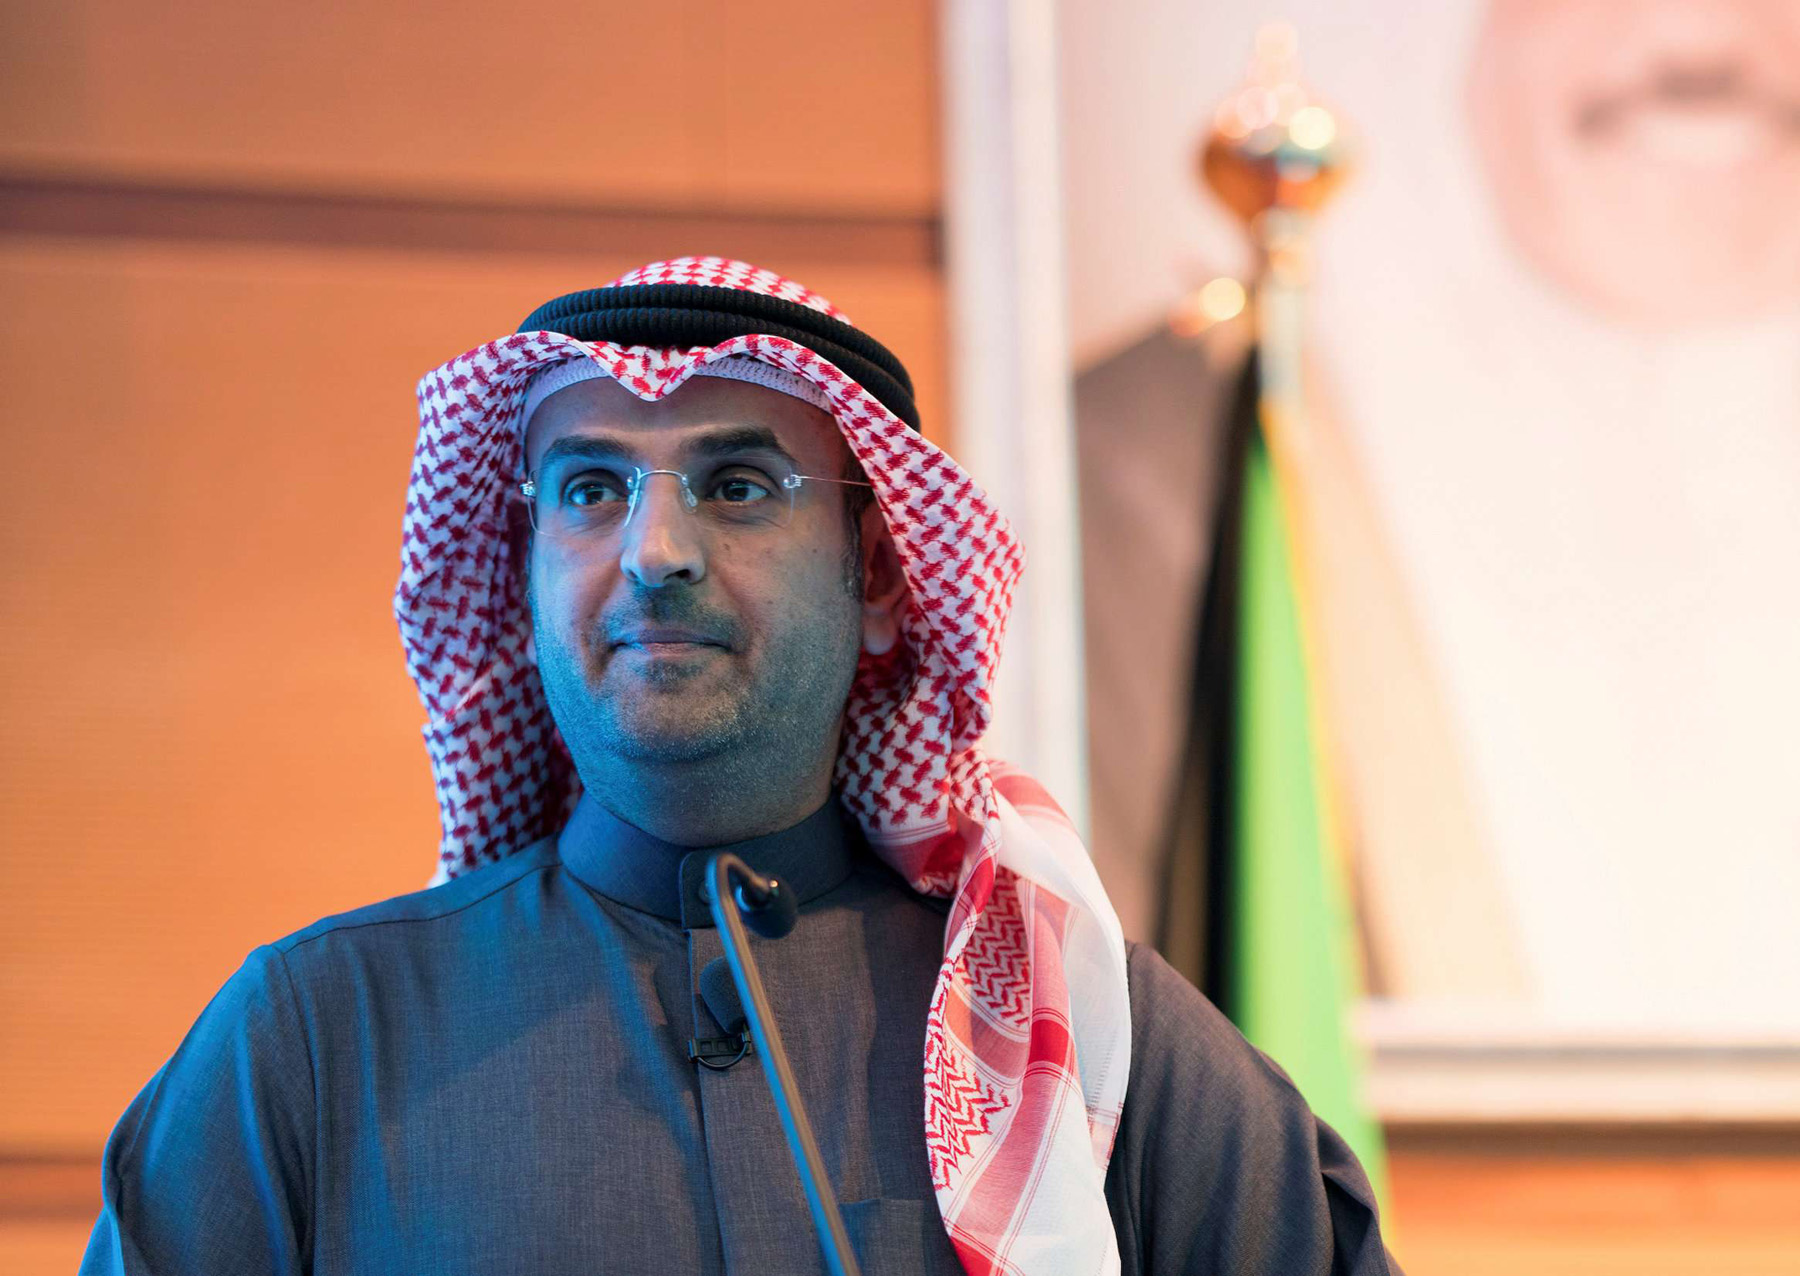 Kuwaiti Finance Minister Nayef al-Hajraf looks on at a conference to announce the Annual Budget of Kuwait for the fiscal year 2019/2020, last January. (Reuters)